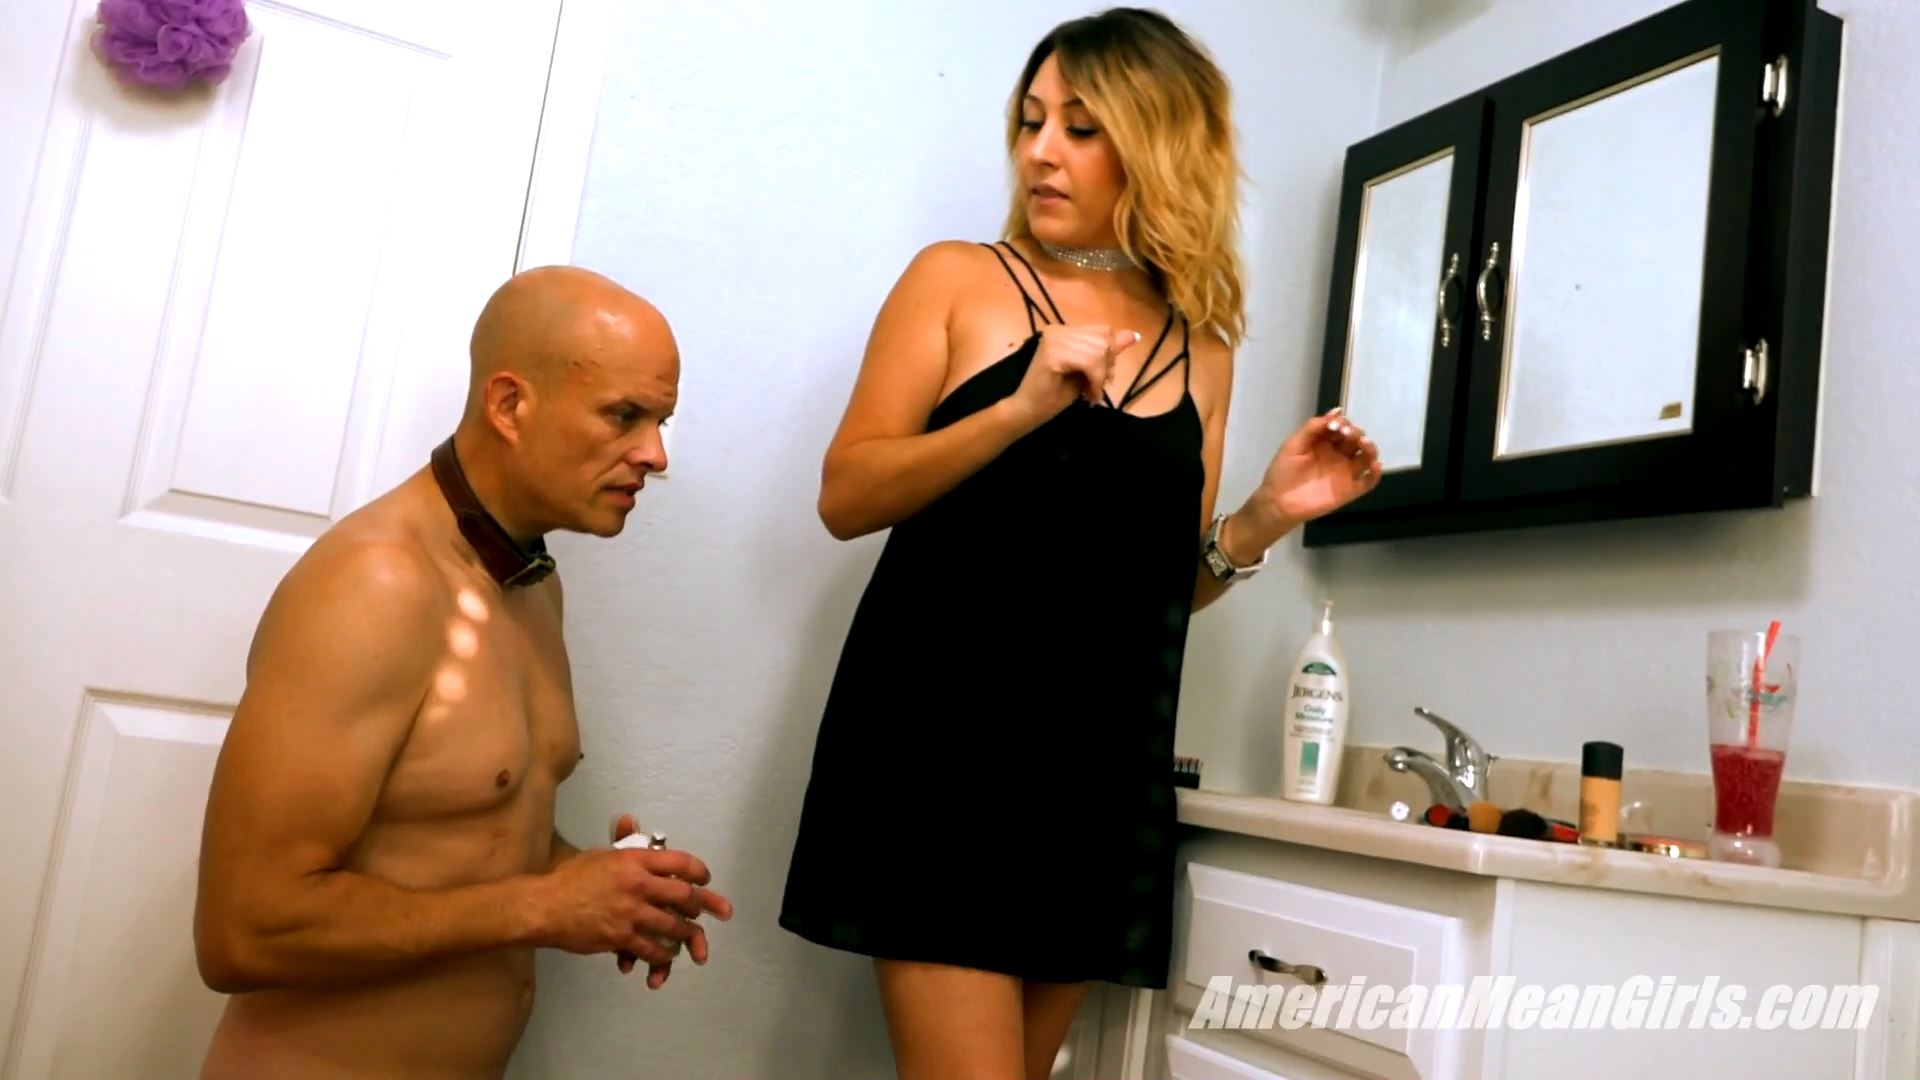 Skylar In Scene: The Sent Of A Real Man - AMERICAN MEAN GIRLS / MIAMI MEAN GIRLS - FULL HD/1080p/MP4